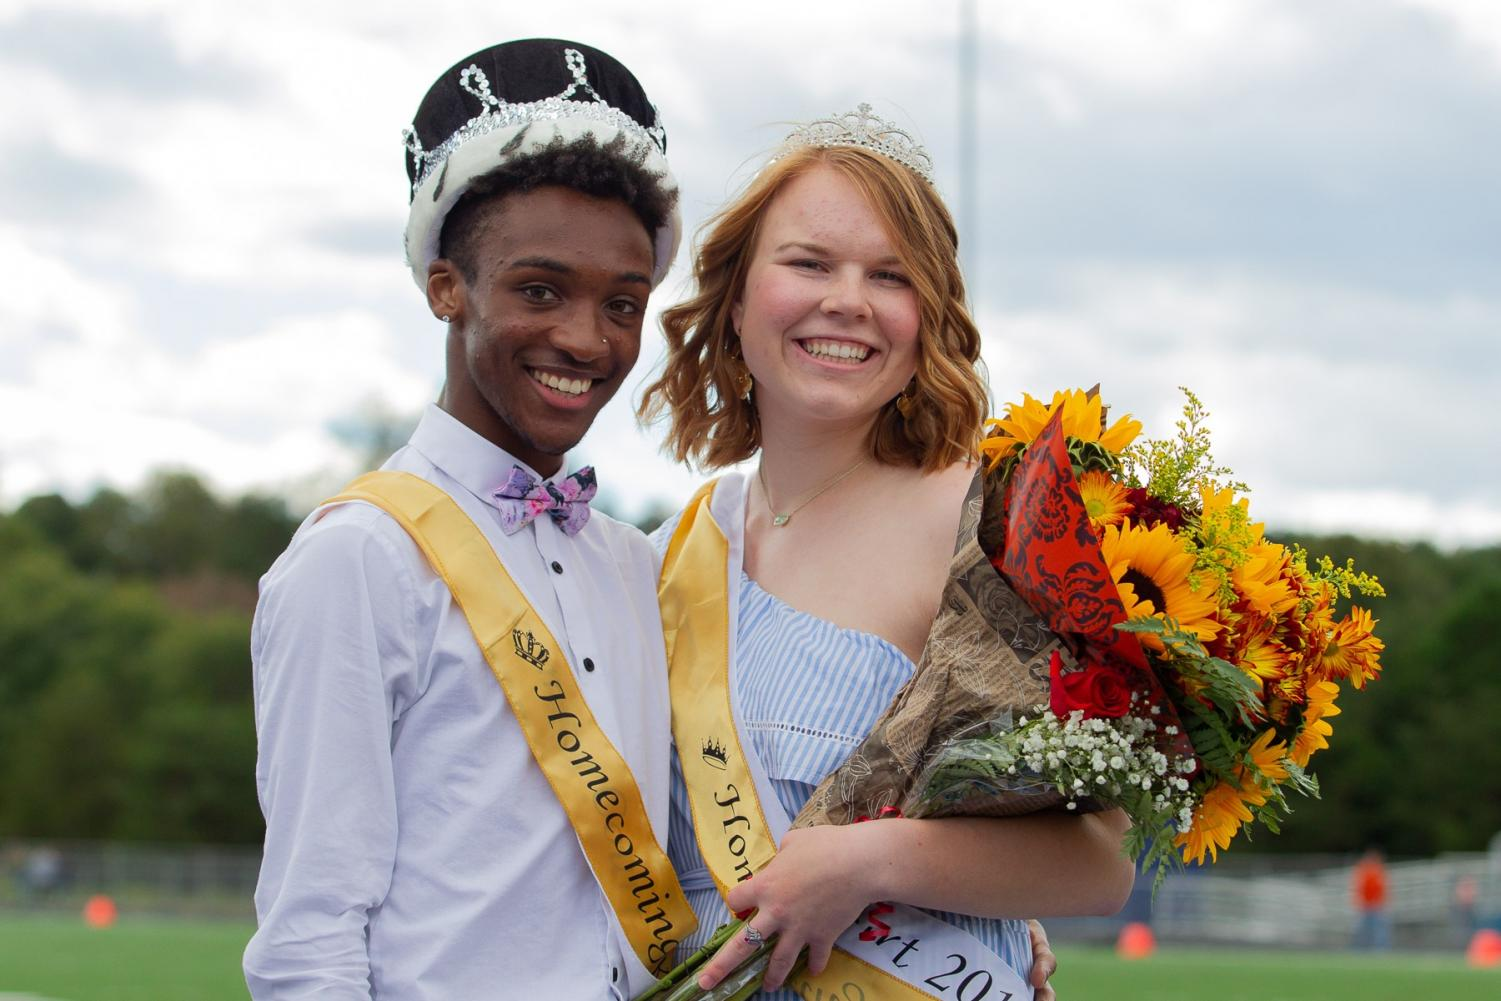 Homecoming+King+and+Queen+Taileek+Ashton+and+Kyra+Shelley+at+the+Homecoming+game+on+Oct.+13.+Photo+courtesy+of+Kenward.